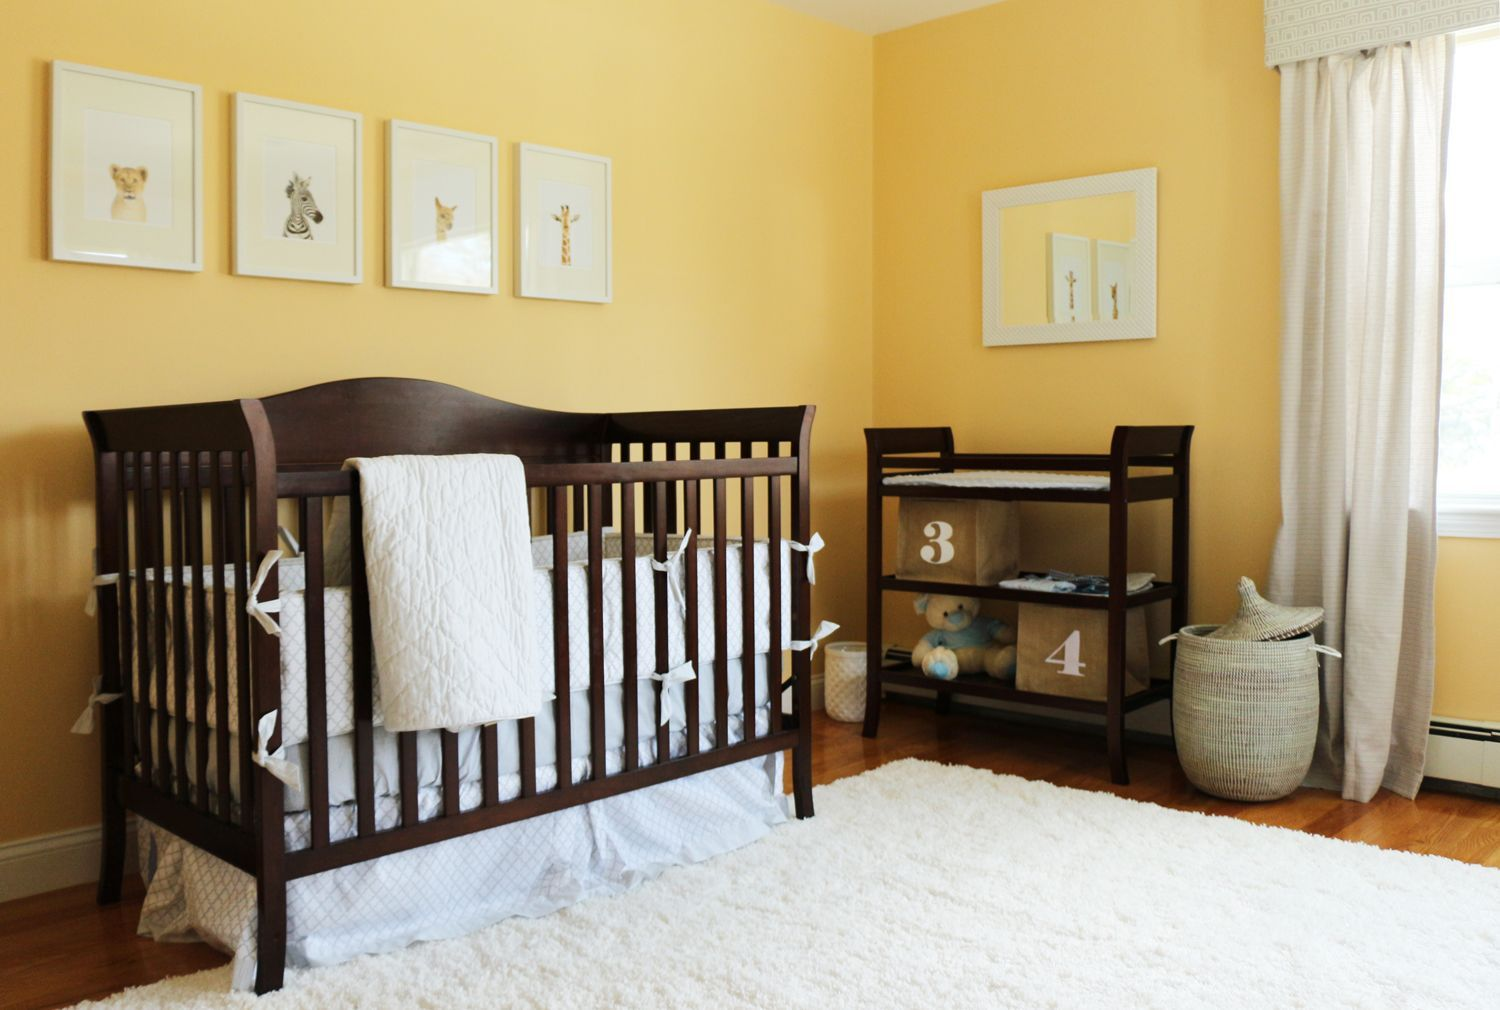 45 Gender-Neutral Baby Nursery Ideas for 2018 | Wood crib, Dark wood ...